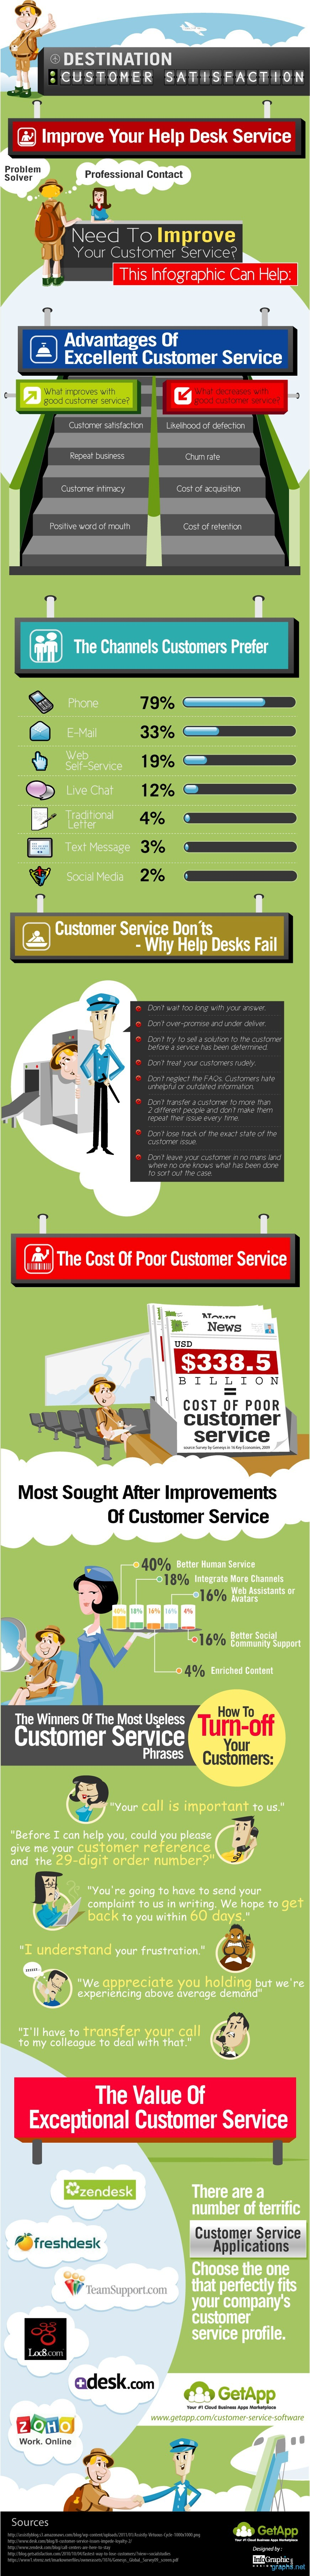 Facts of Customer Service